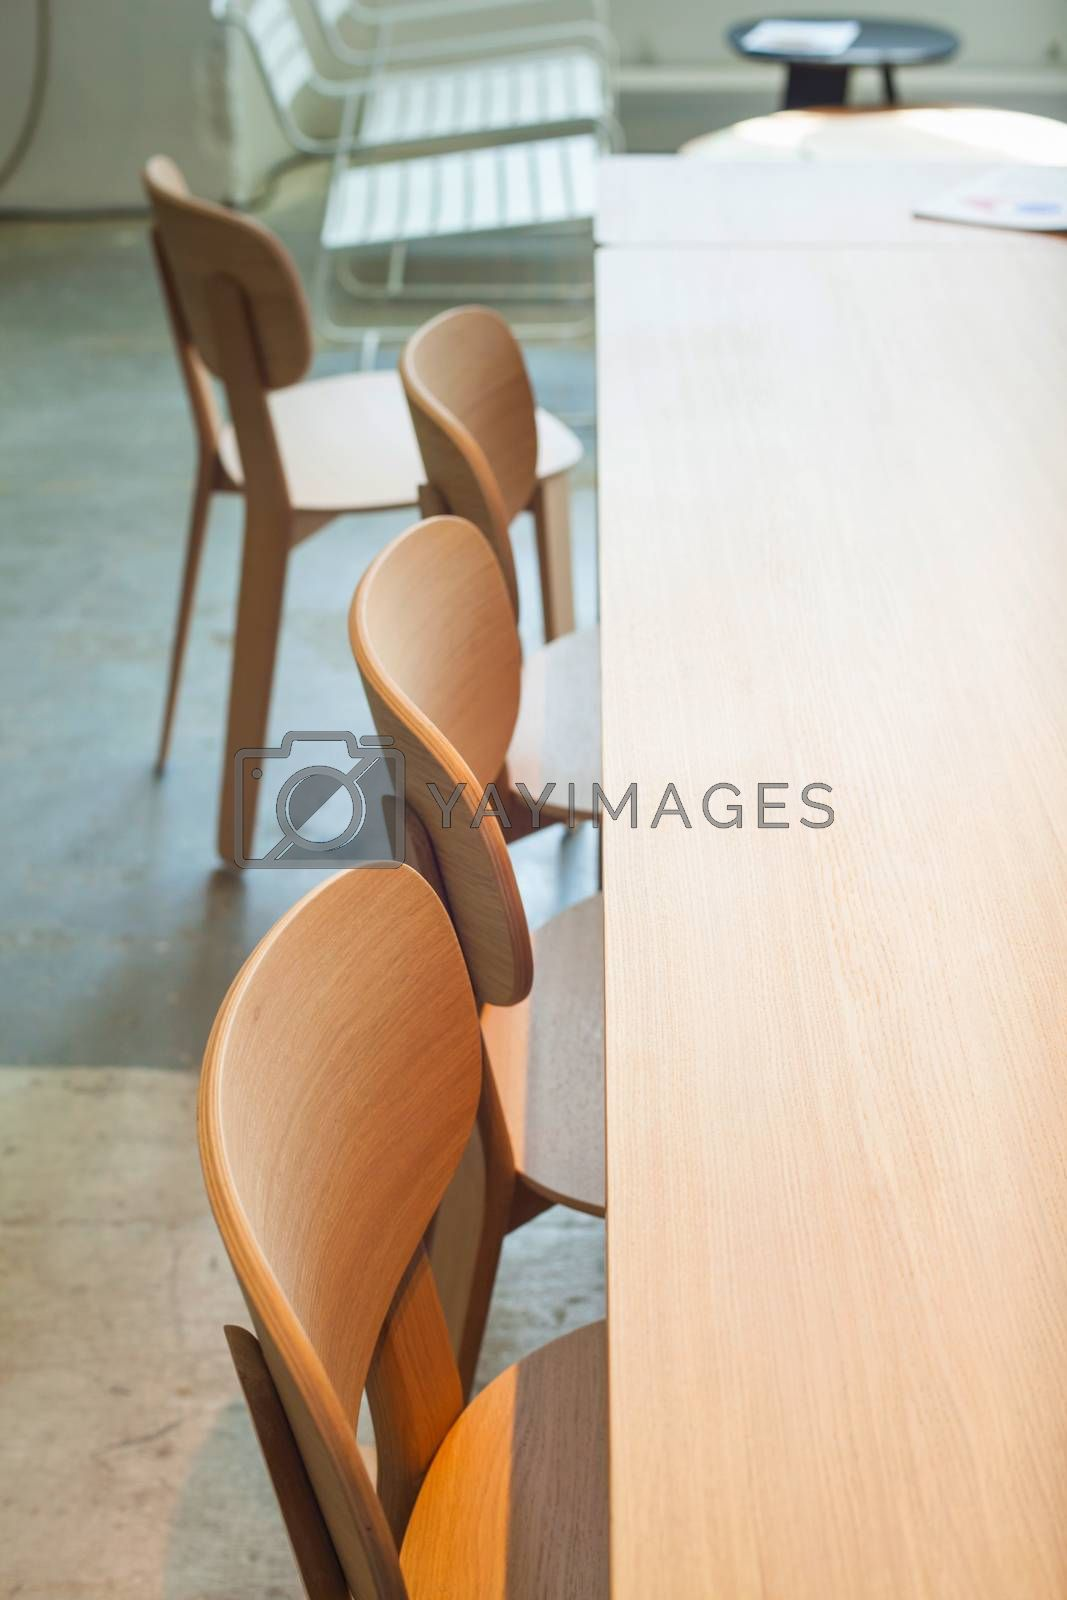 Chairs and table by bepsimage